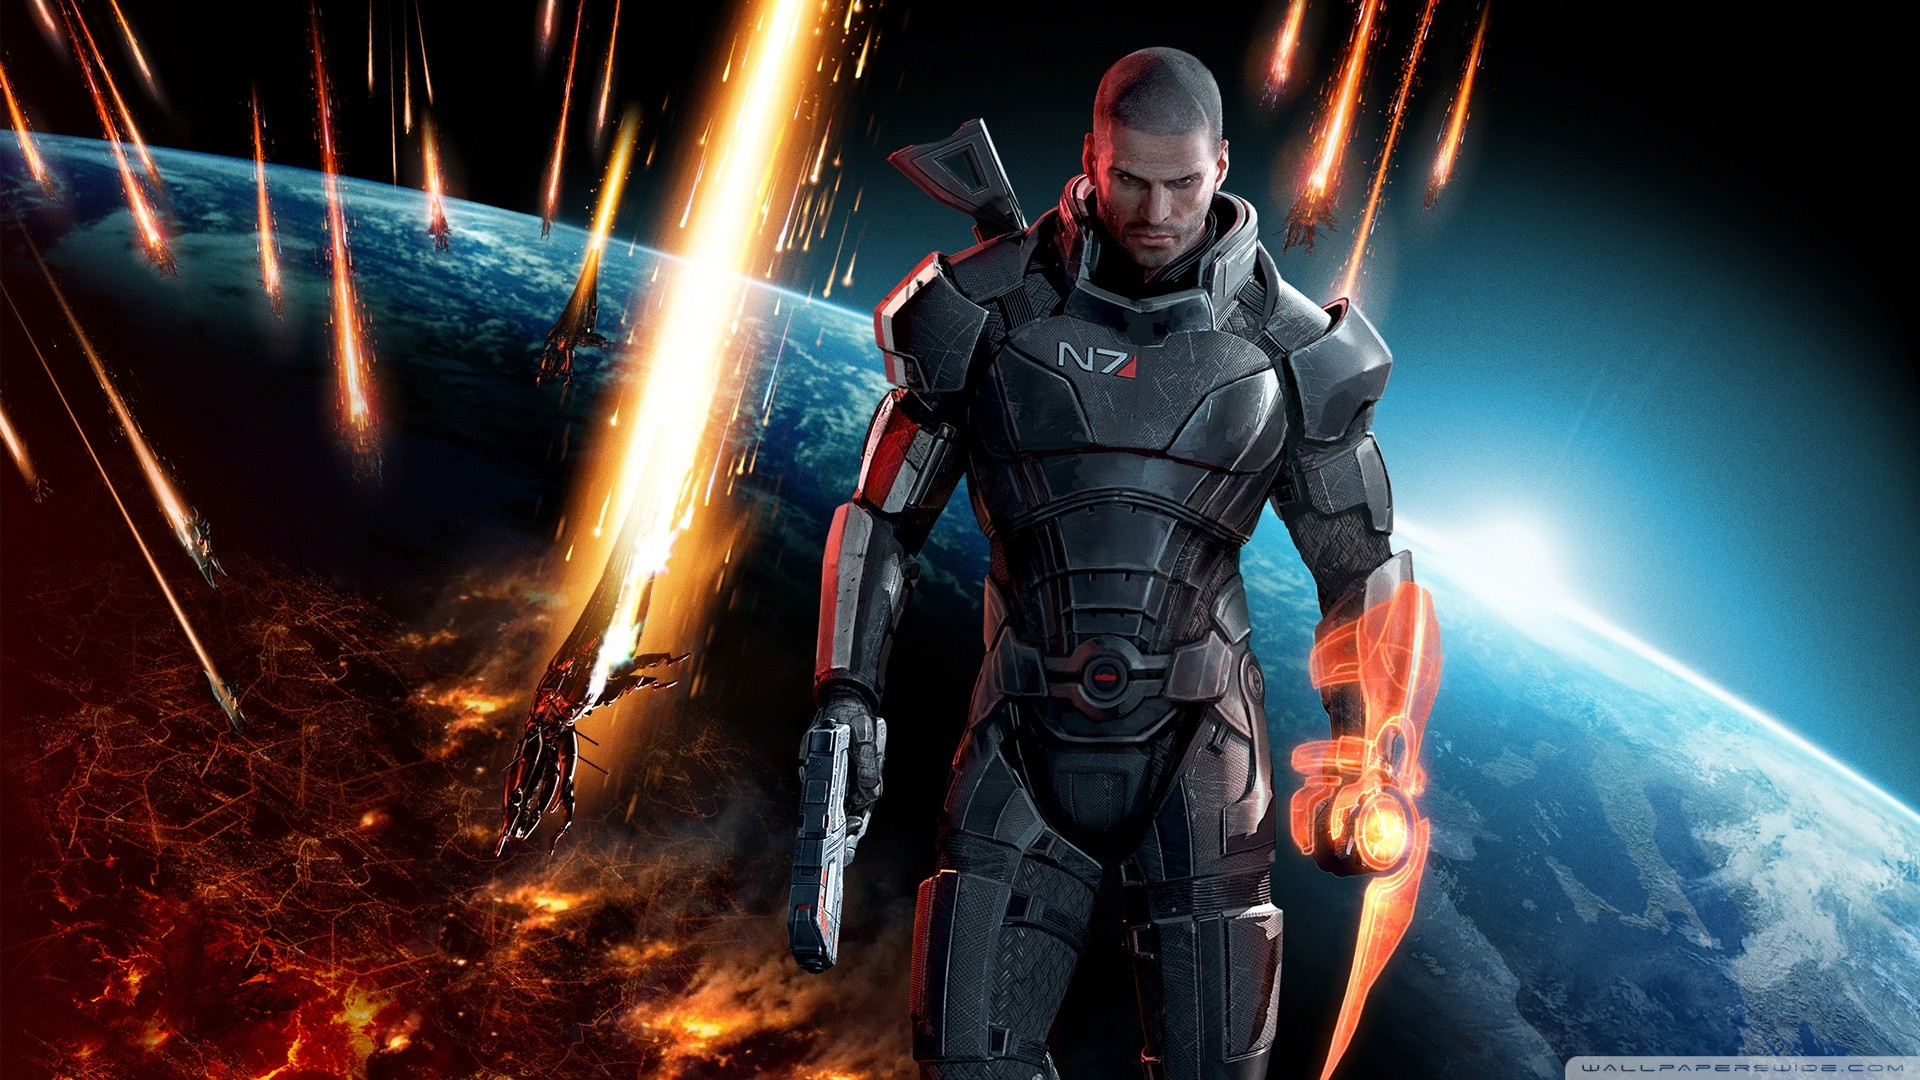 Mass Effect Wallpaper 1920x1080 81 Images